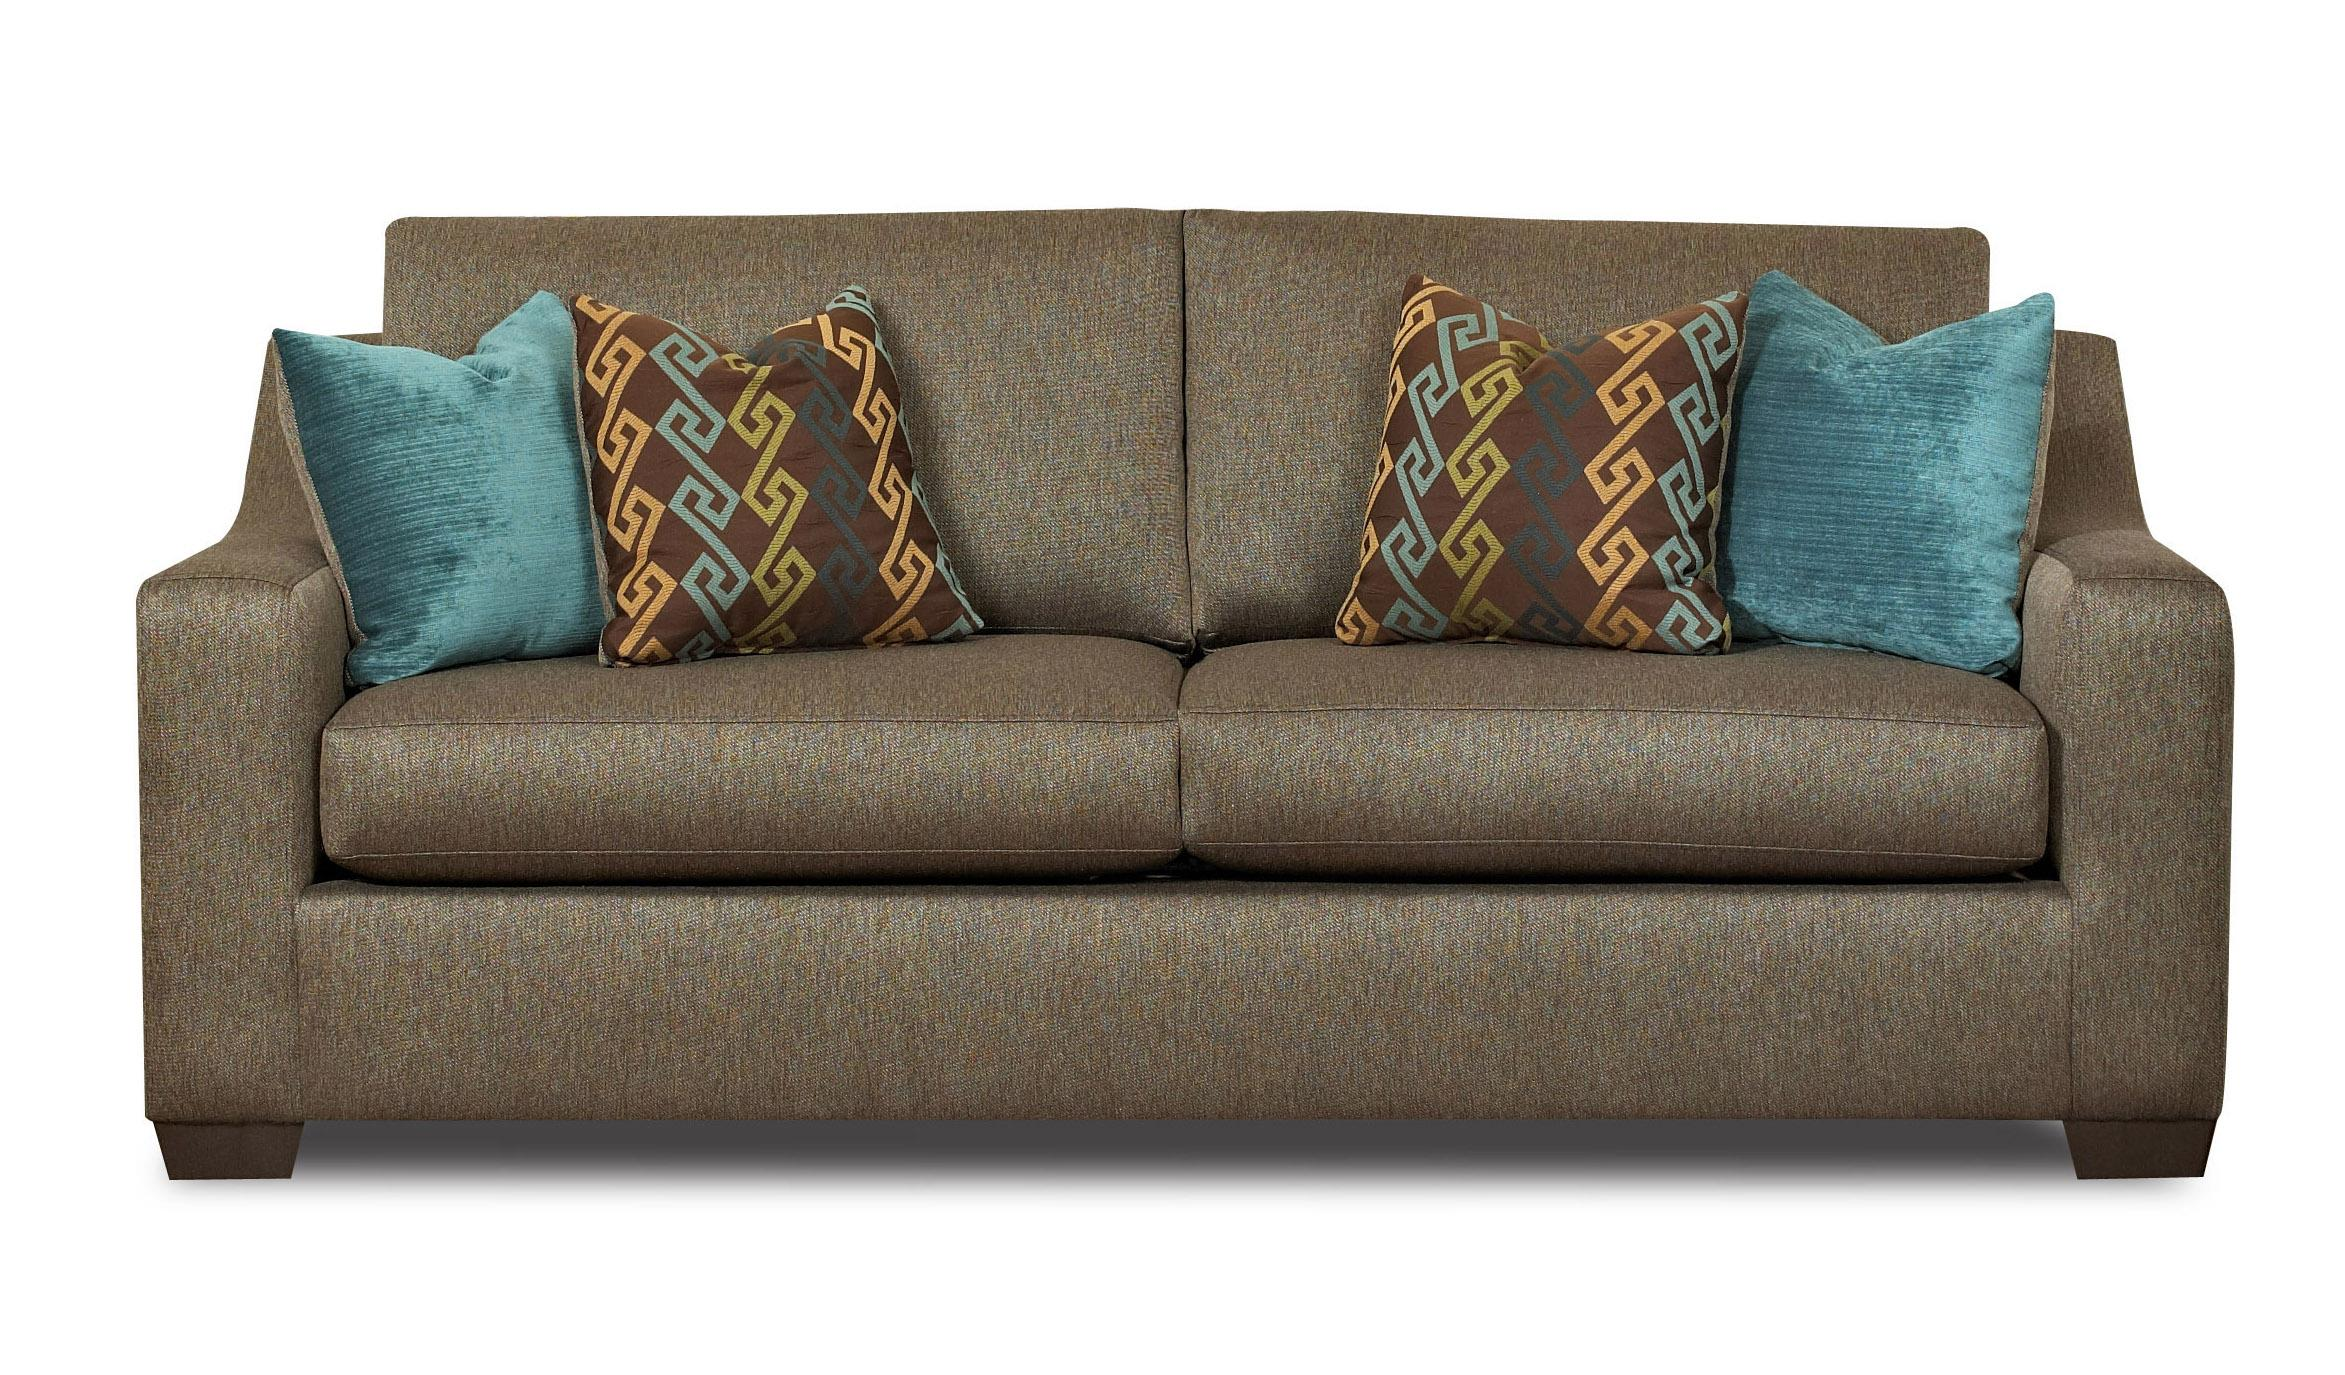 Groovy Argos Contemporary Sofa With Sloped Arms And Loose Back Cushions By Klaussner At Dunk Bright Furniture Bralicious Painted Fabric Chair Ideas Braliciousco